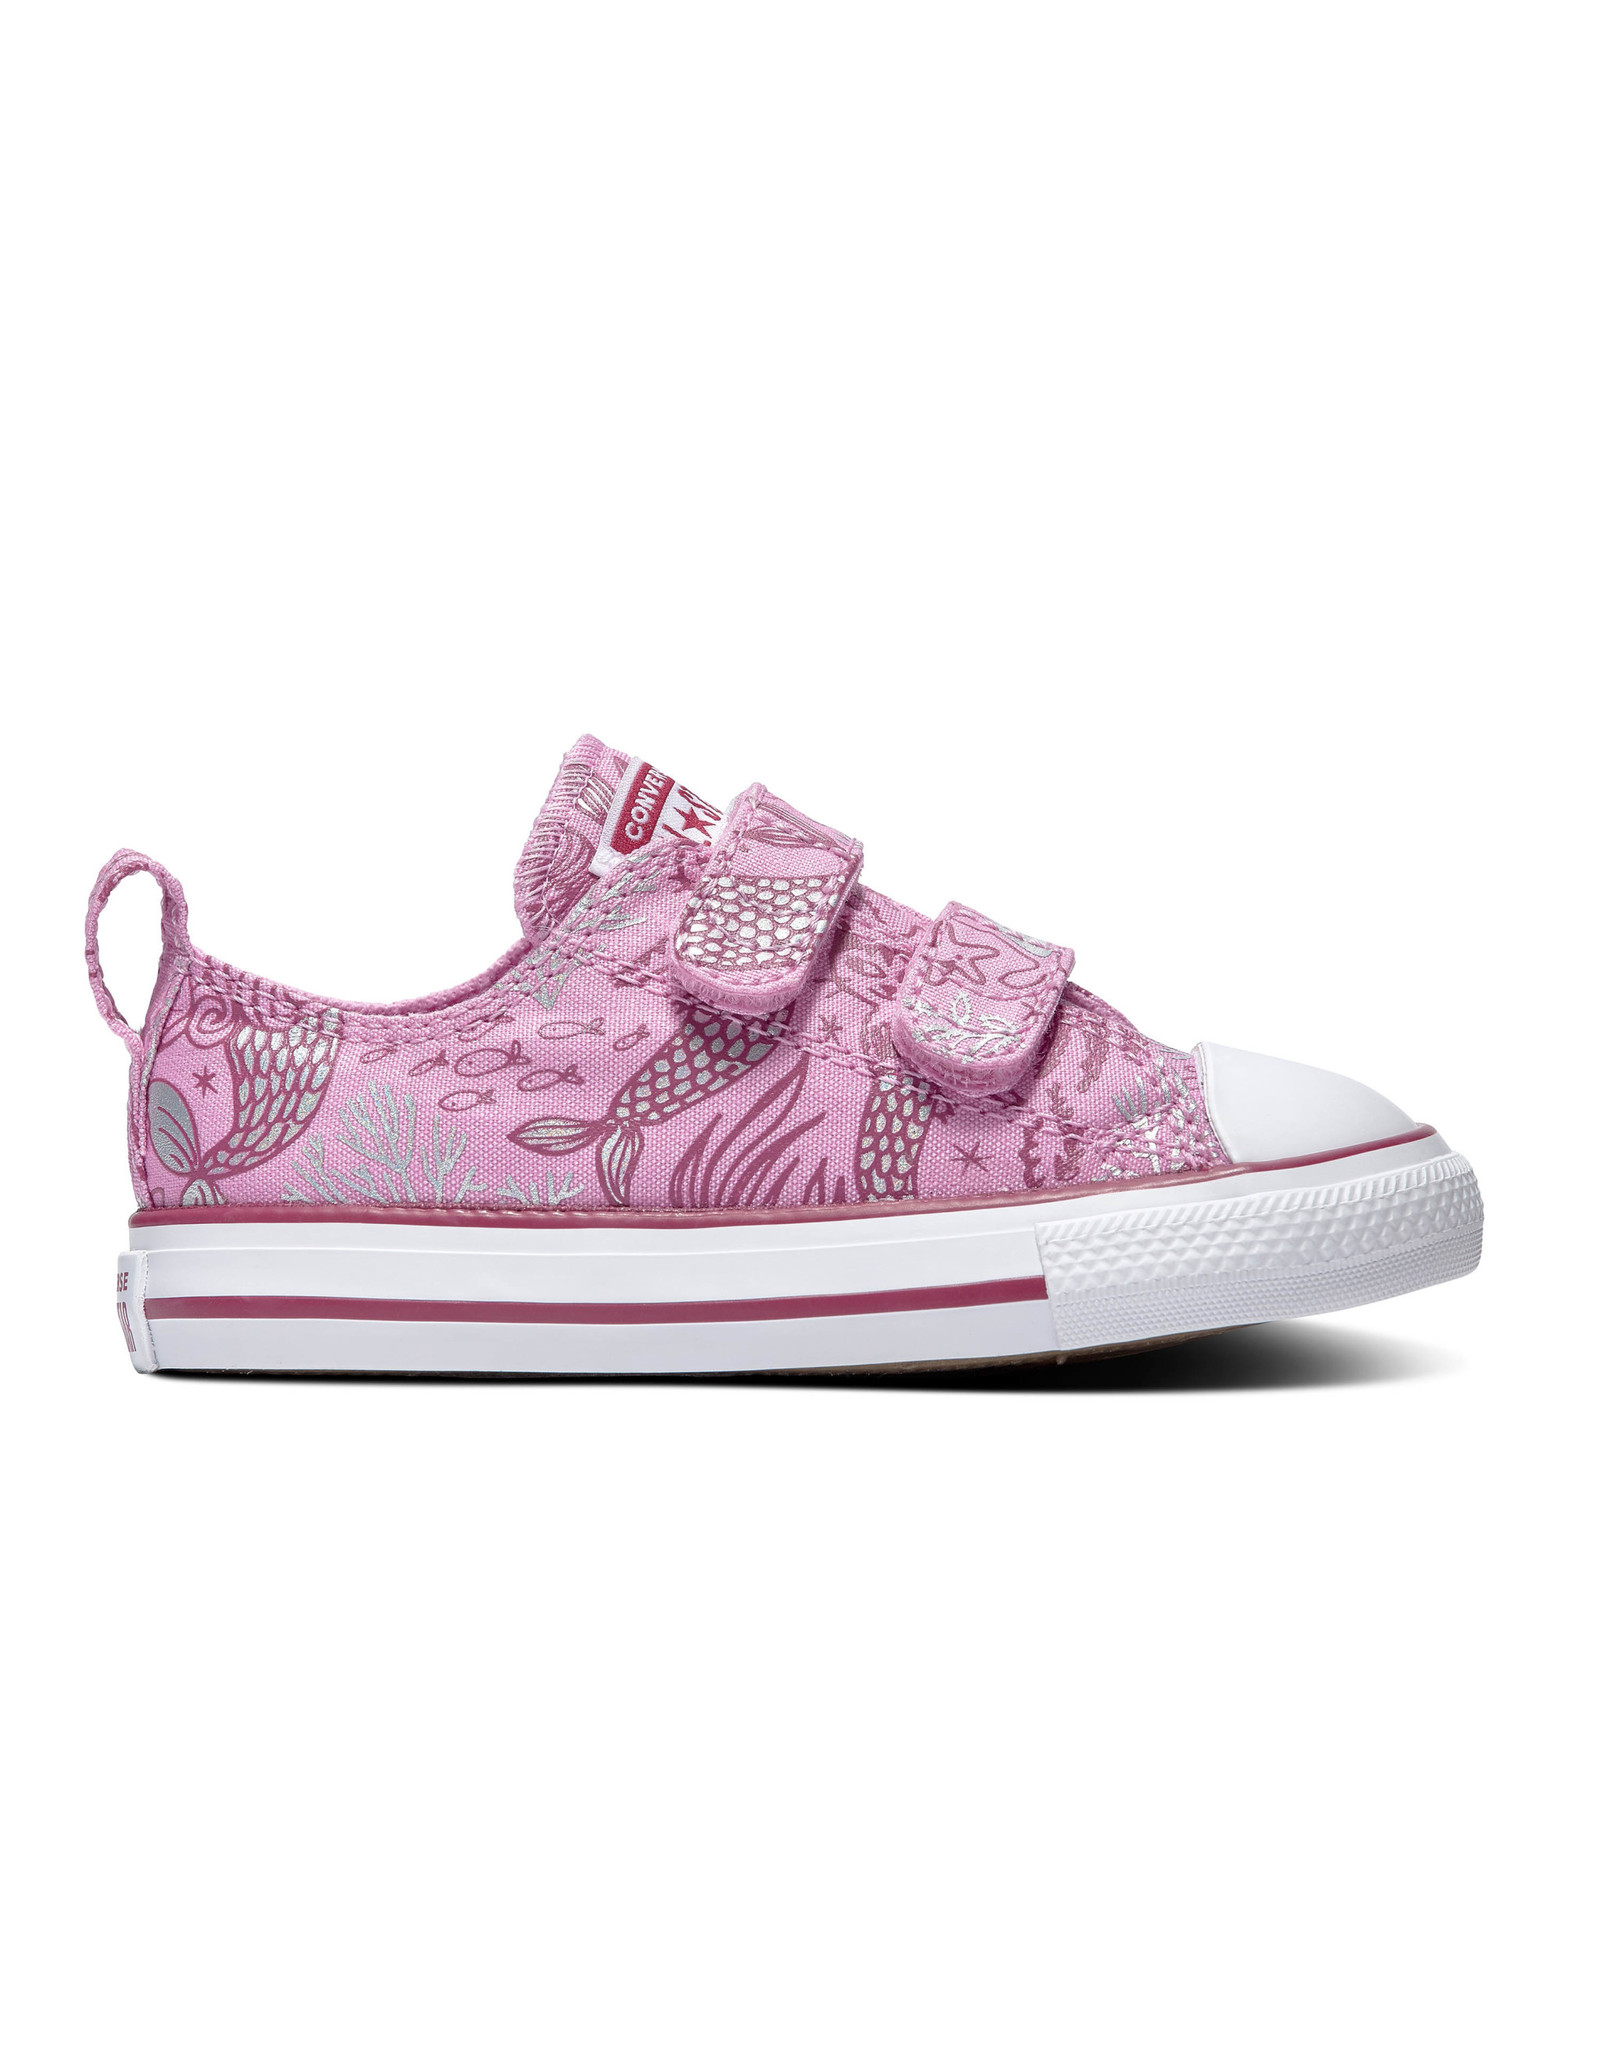 CONVERSE CHUCK TAYLOR ALL STAR  2V OX PEONY PINK/ROSE MAROON/WHITE CLSIR-767205C